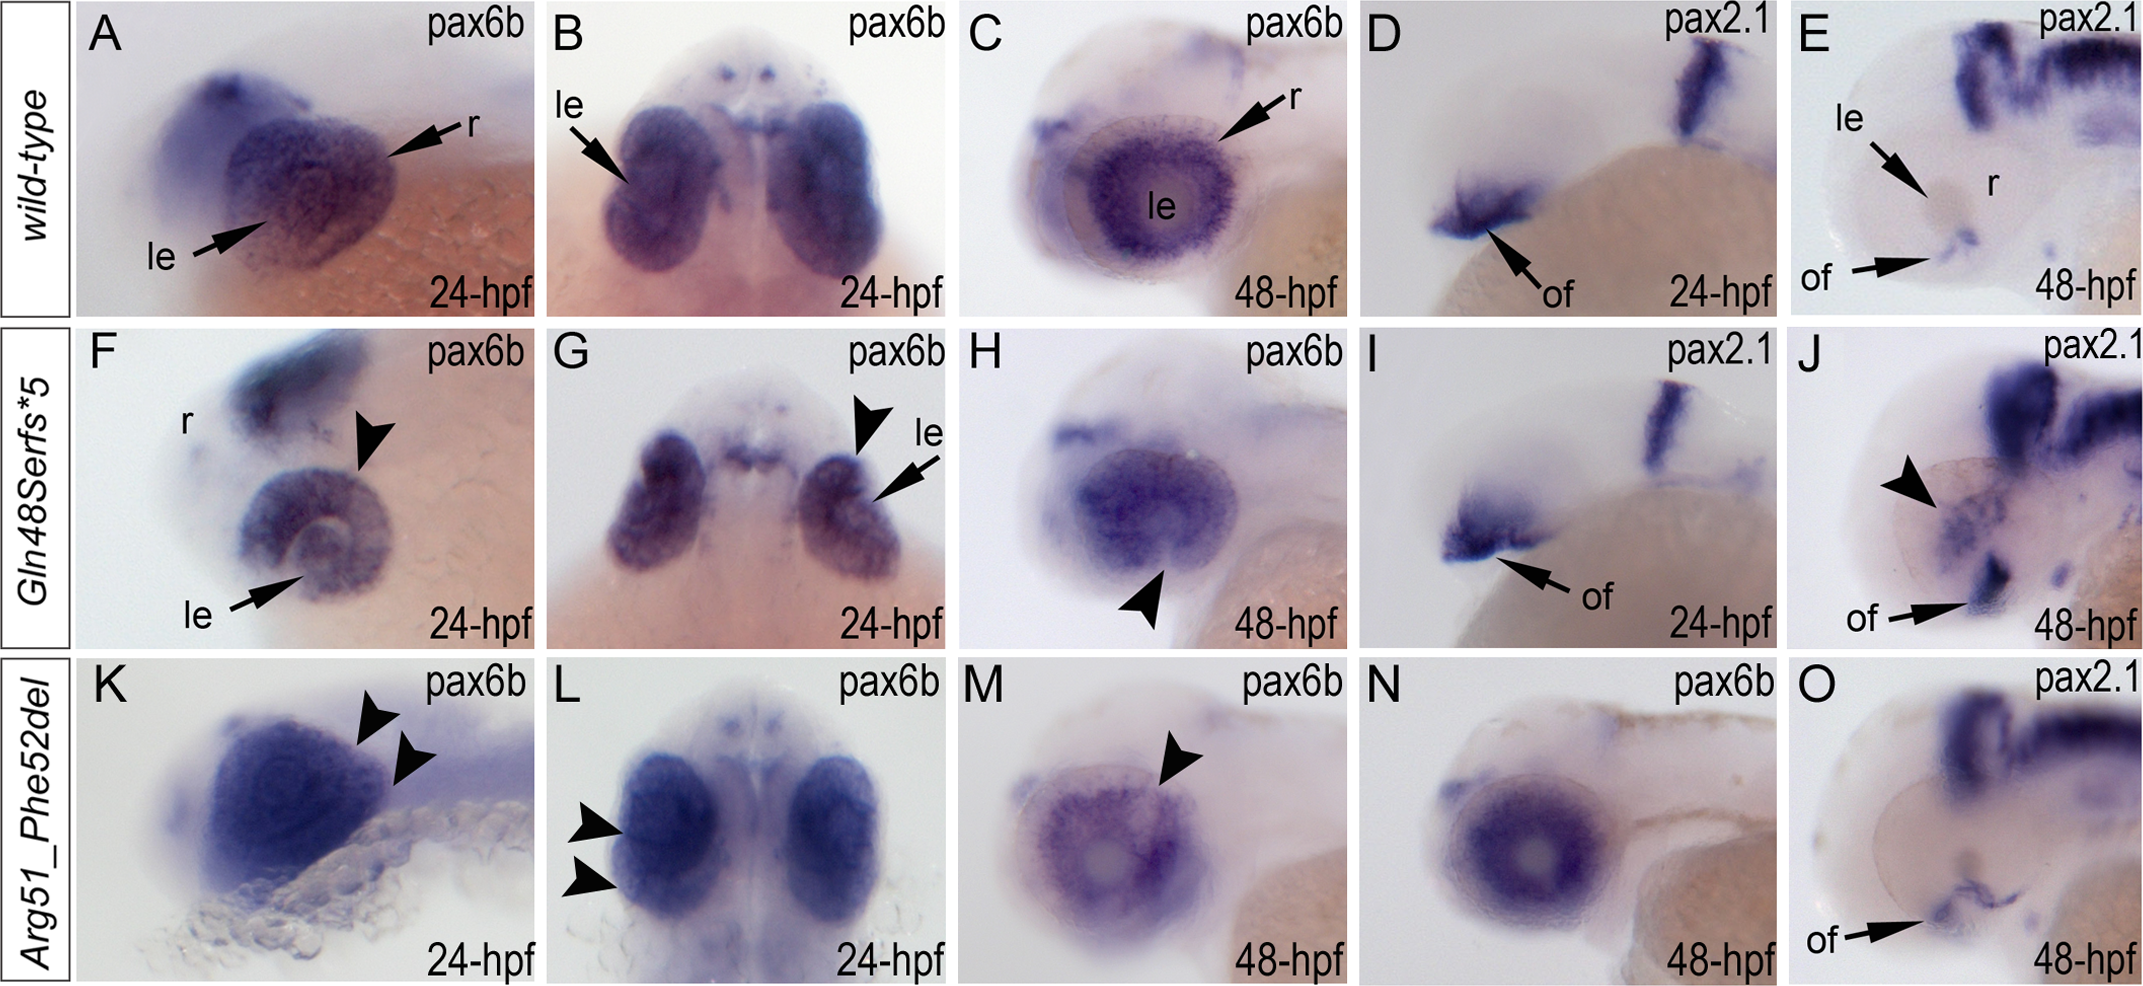 Analysis of <i>pax6b</i>, <i>pax2</i>.<i>1</i> and <i>foxe3</i> expression in wild-type, <i>mab21l2</i><sup><i>Q48Sfs*5</i></sup> and <i>mab21l2</i><sup><i>R51_F52del</i></sup> embryos.